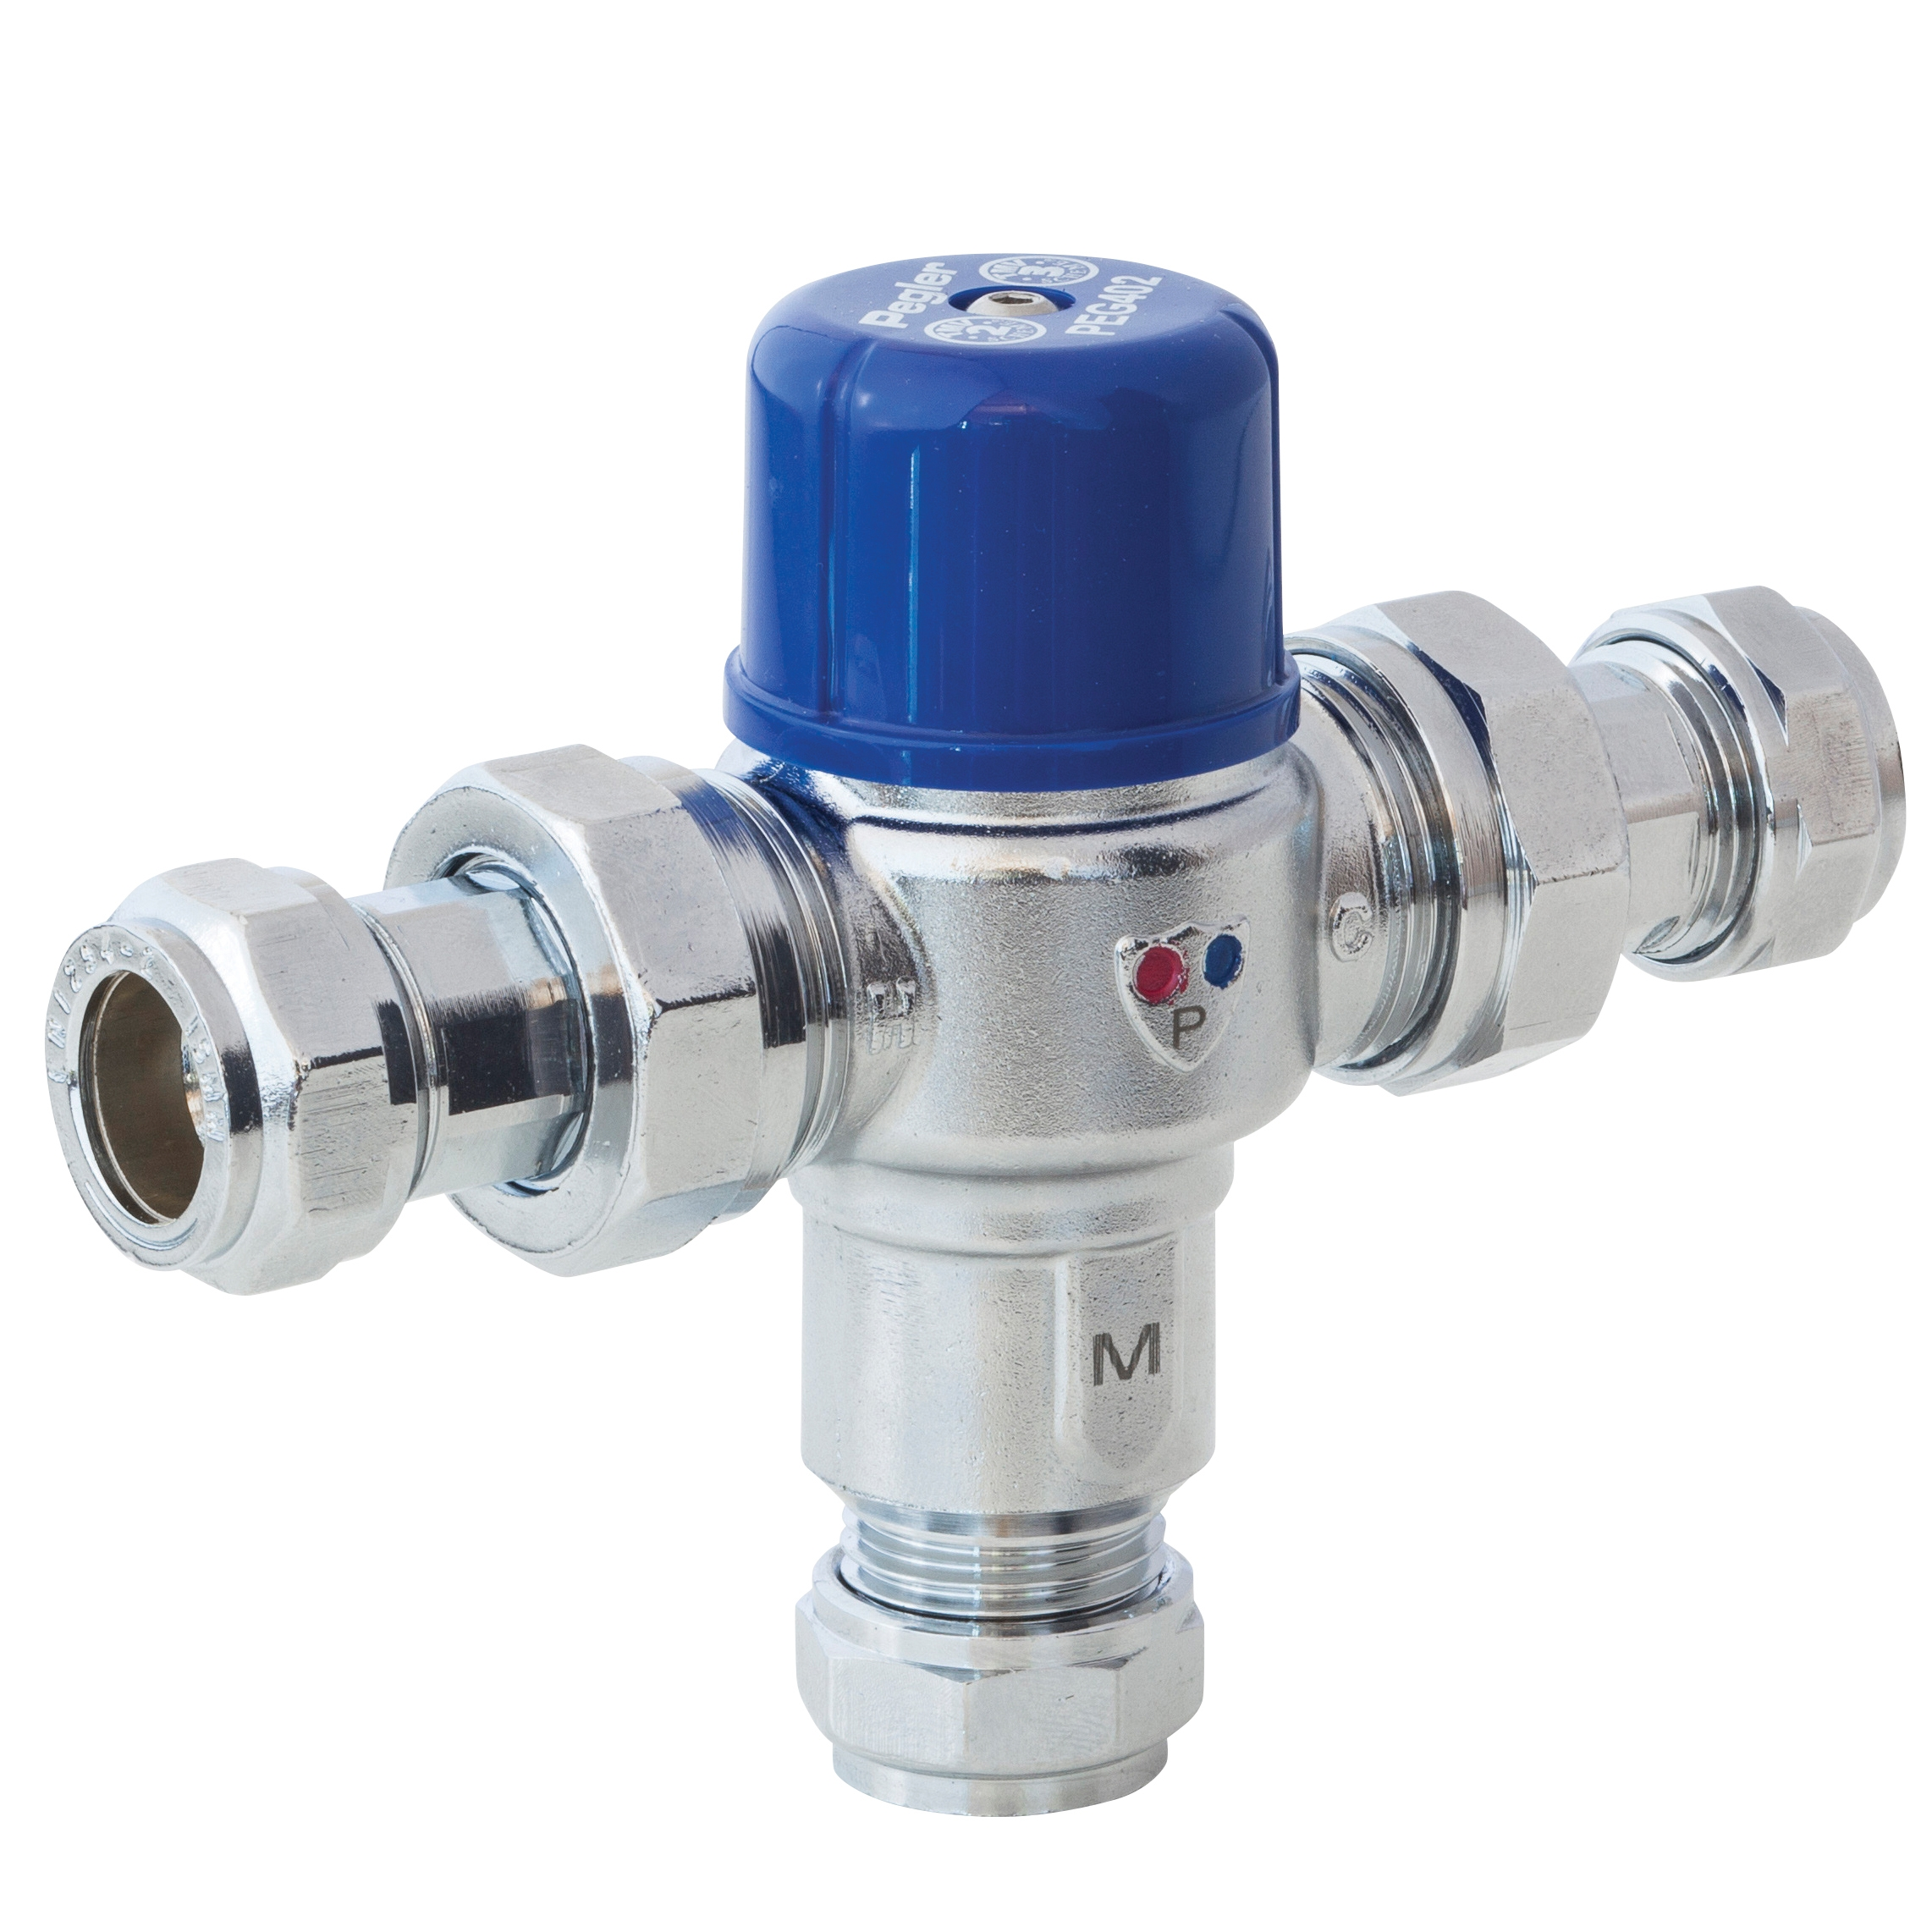 Thermostatic Mixing Valve: Thermostatic Mixing Valves